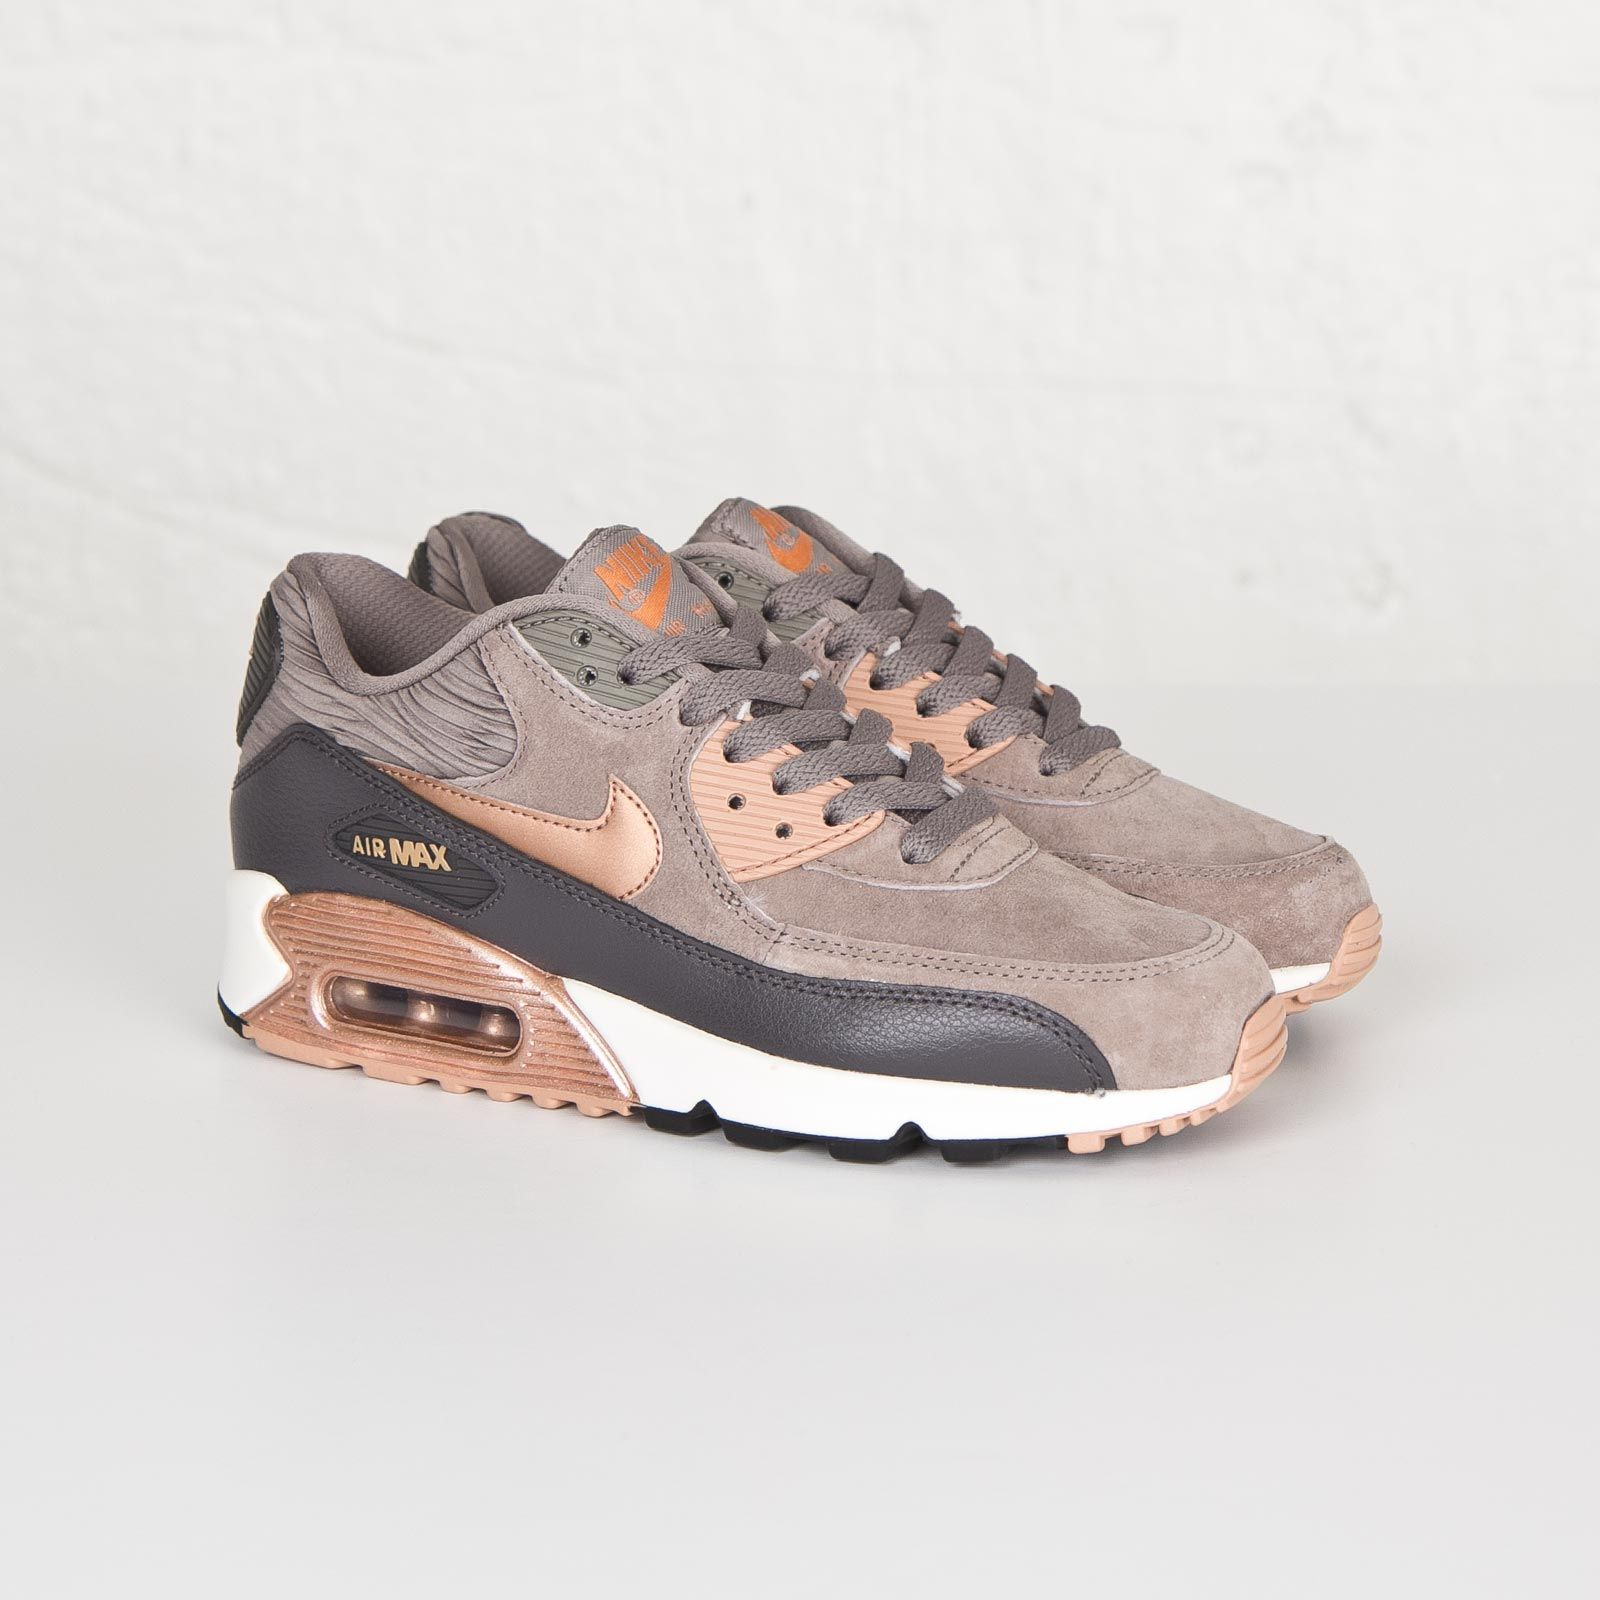 watch e9547 8b03f nice Shoes   Styles in 2019   Air max 90 leather, Nike air max, Nike